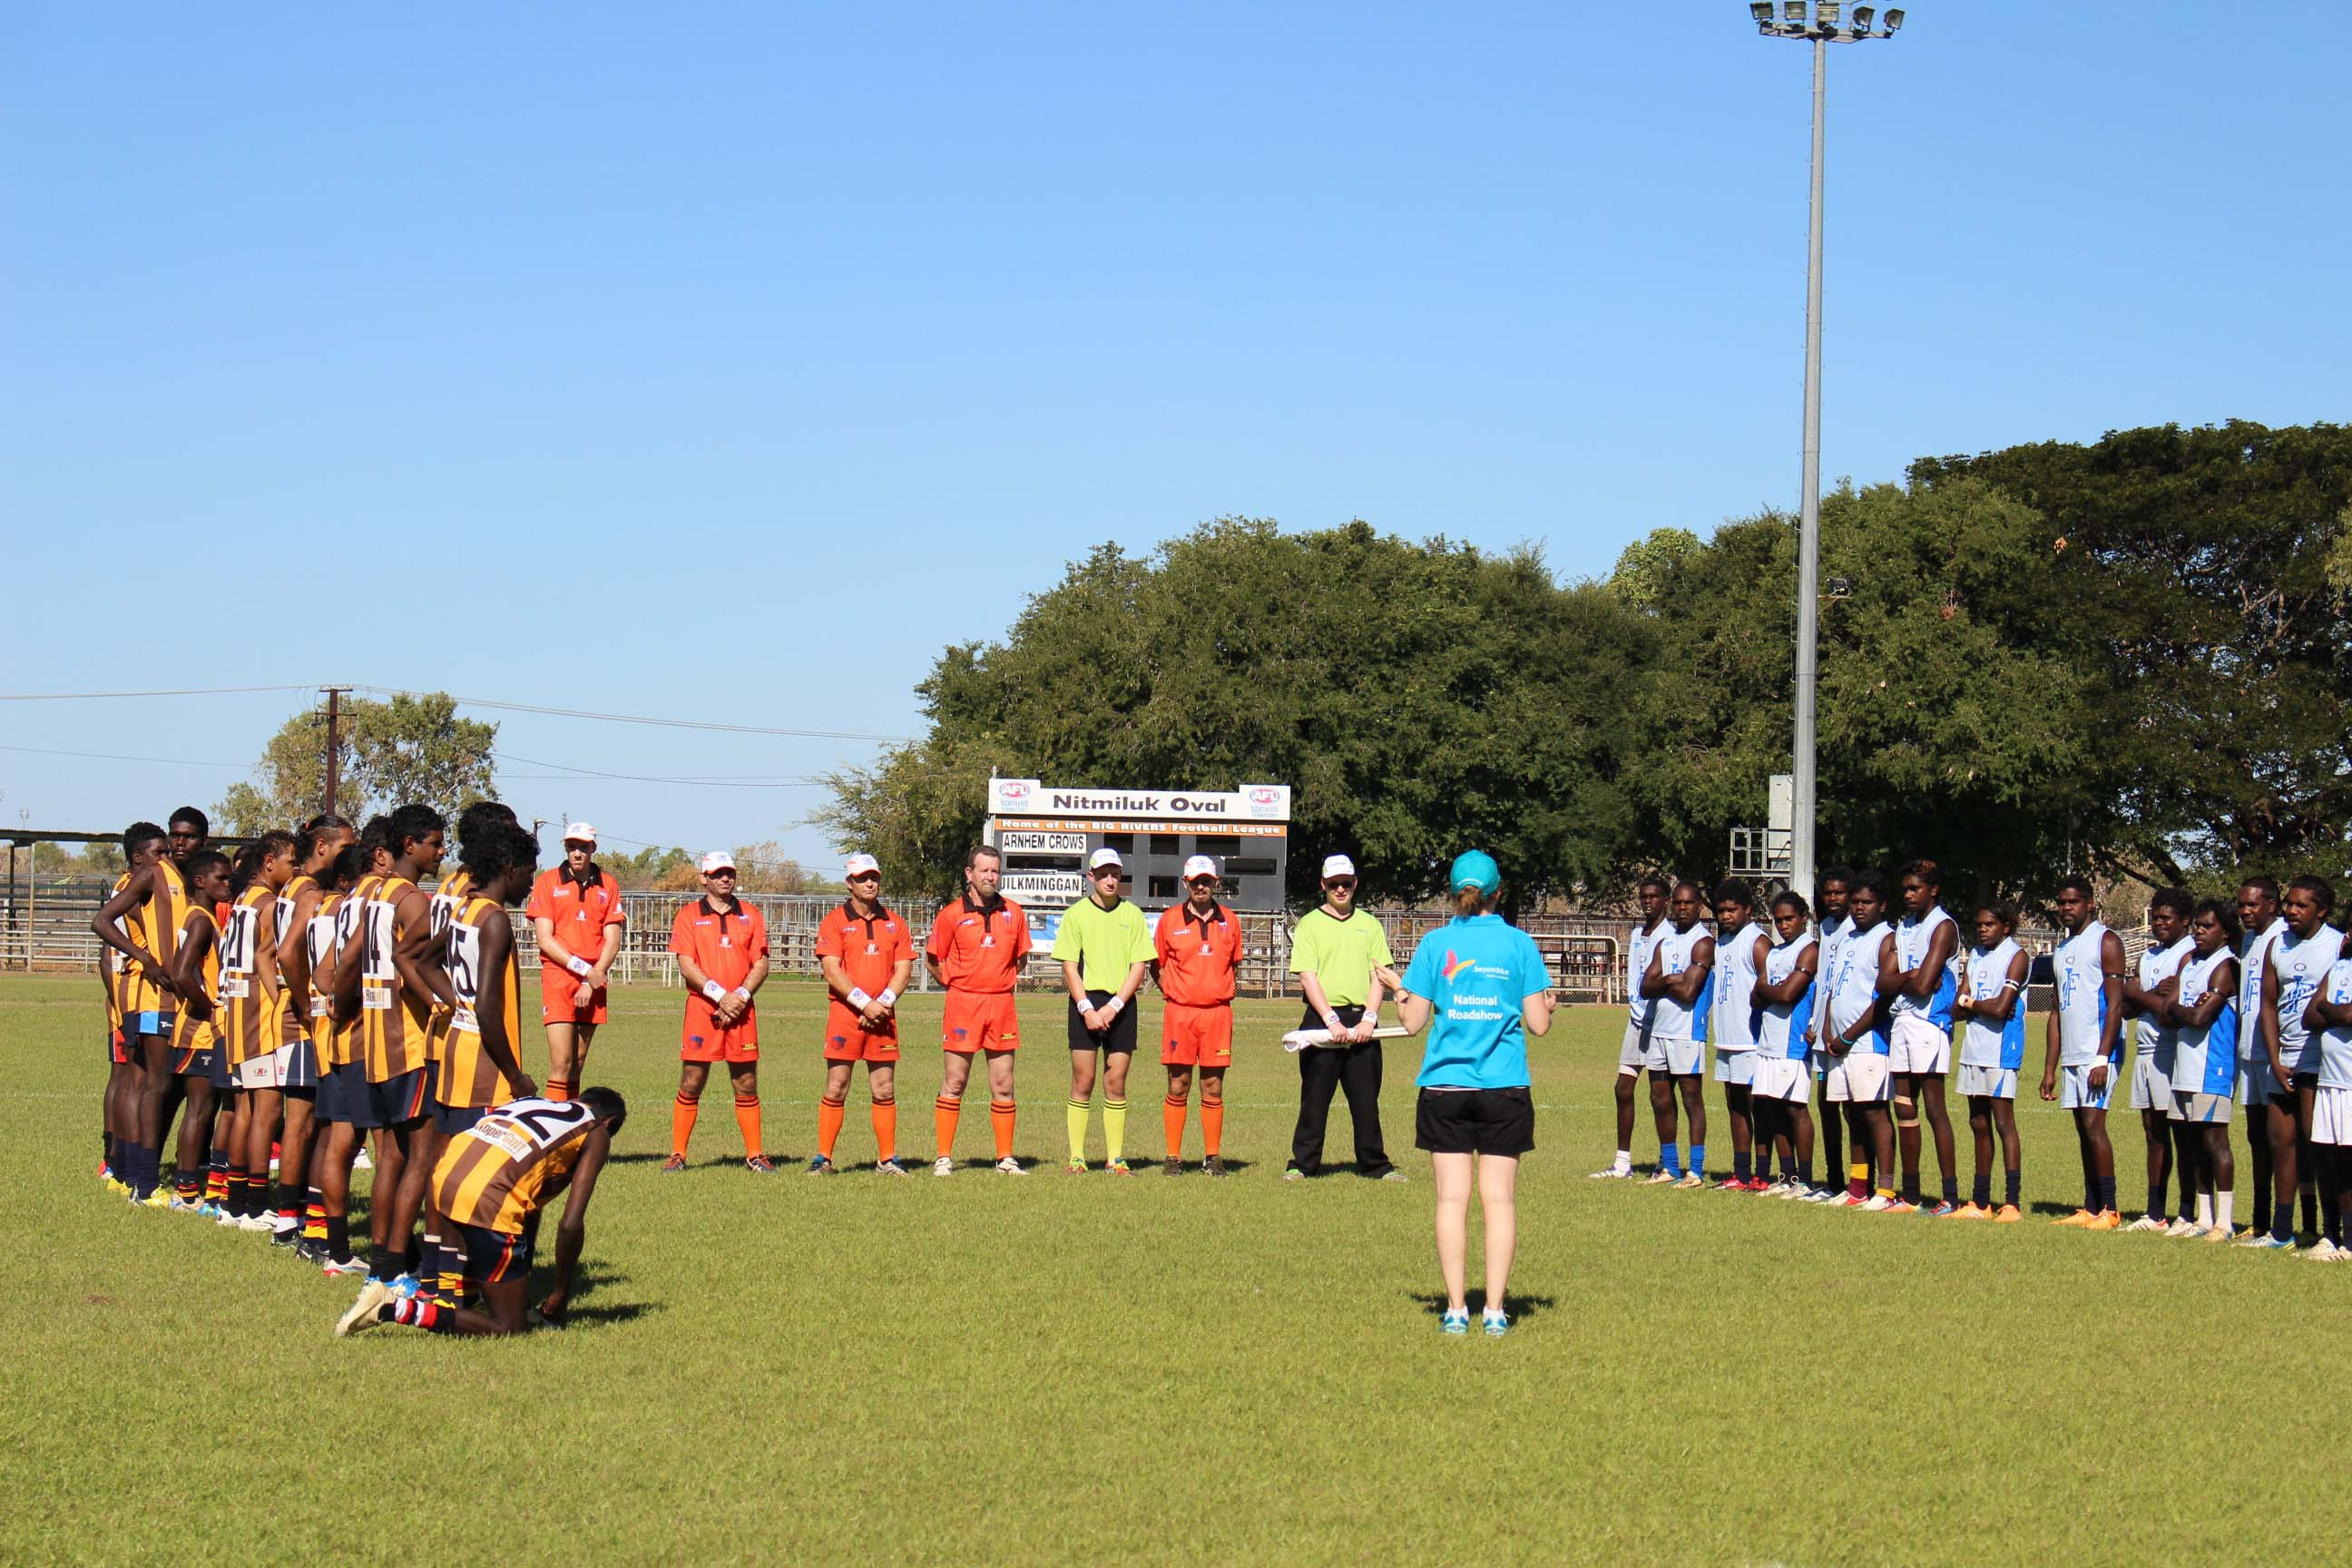 Beyond Blue's Katie speaks to teams ahead of one of the football matches in Katherine.